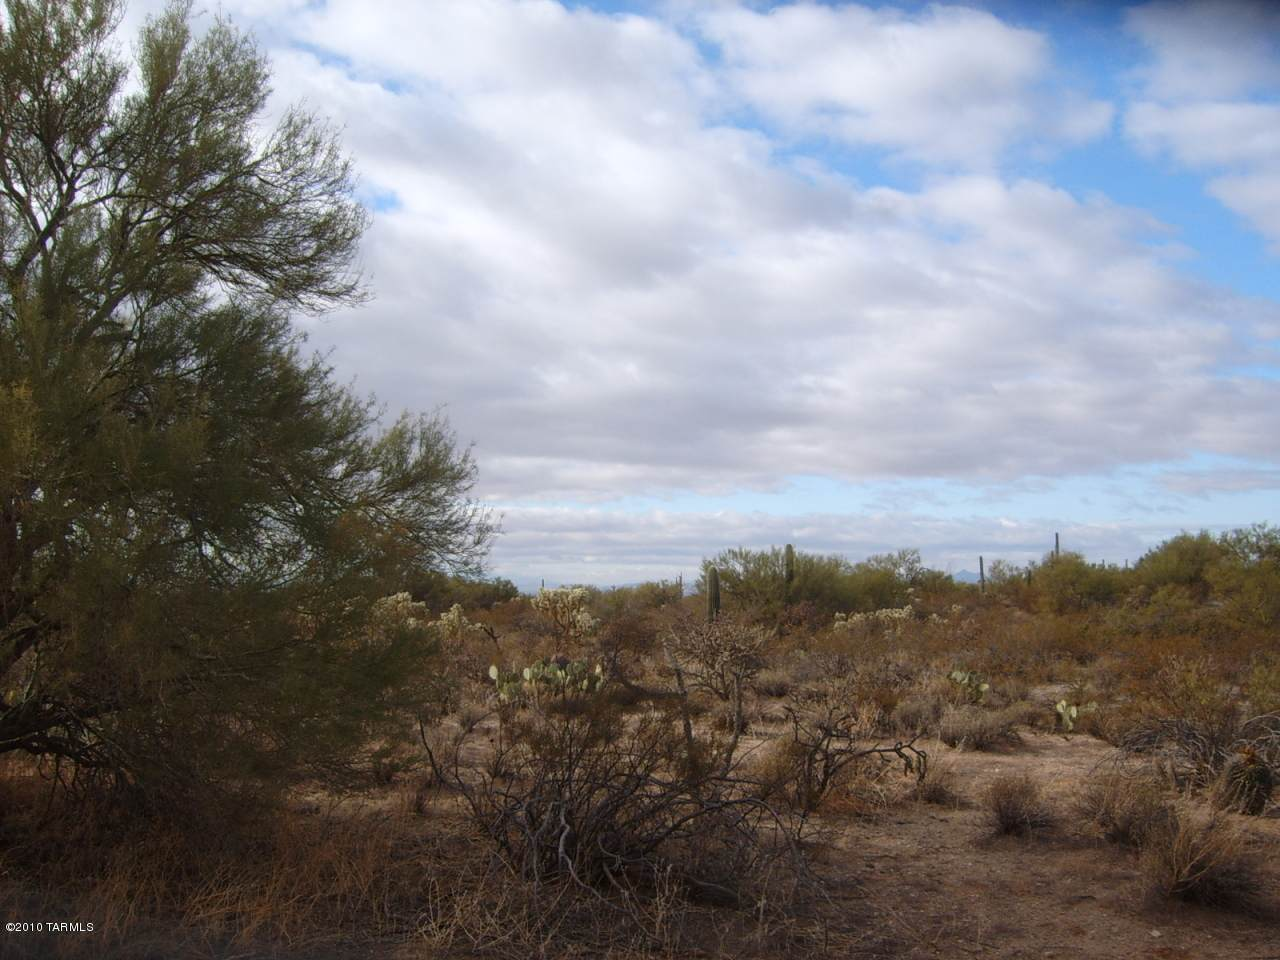 https://bt-photos.global.ssl.fastly.net/tucson/orig_boomver_1_22014380-2.jpg